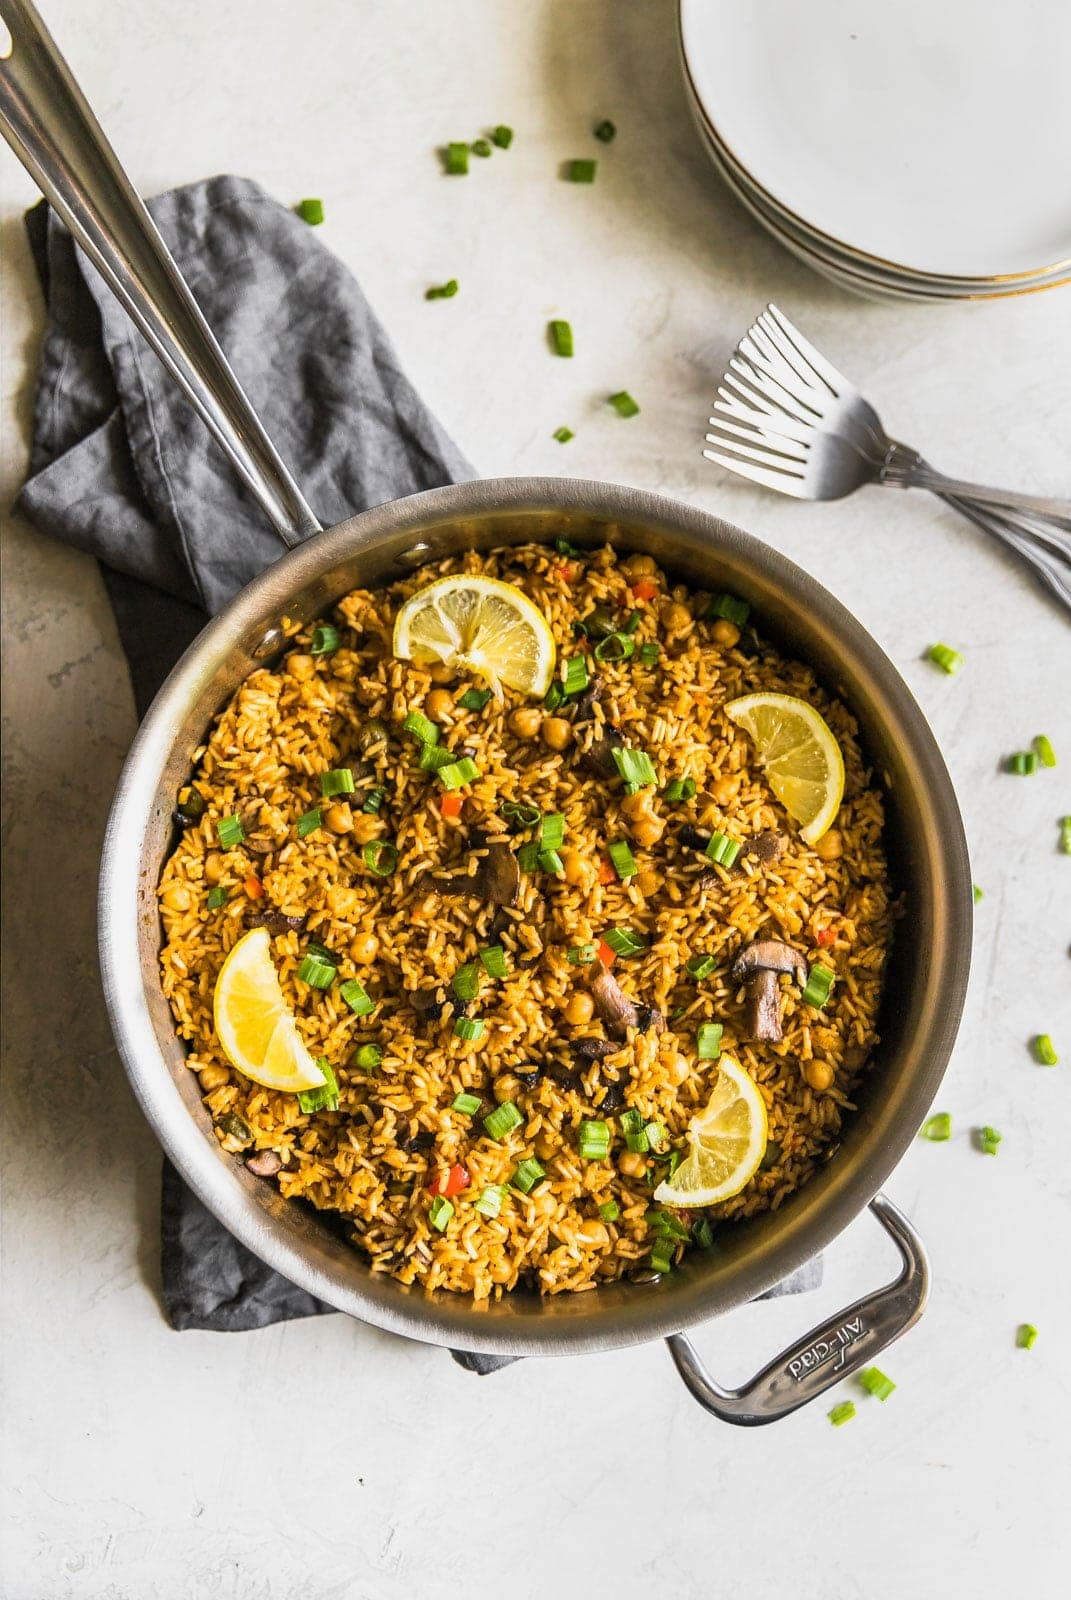 A quick and easy vegetarian paella made with brown rice, garbanzo beans, mushrooms, red peppers, and peas. Perfect weeknight meal!